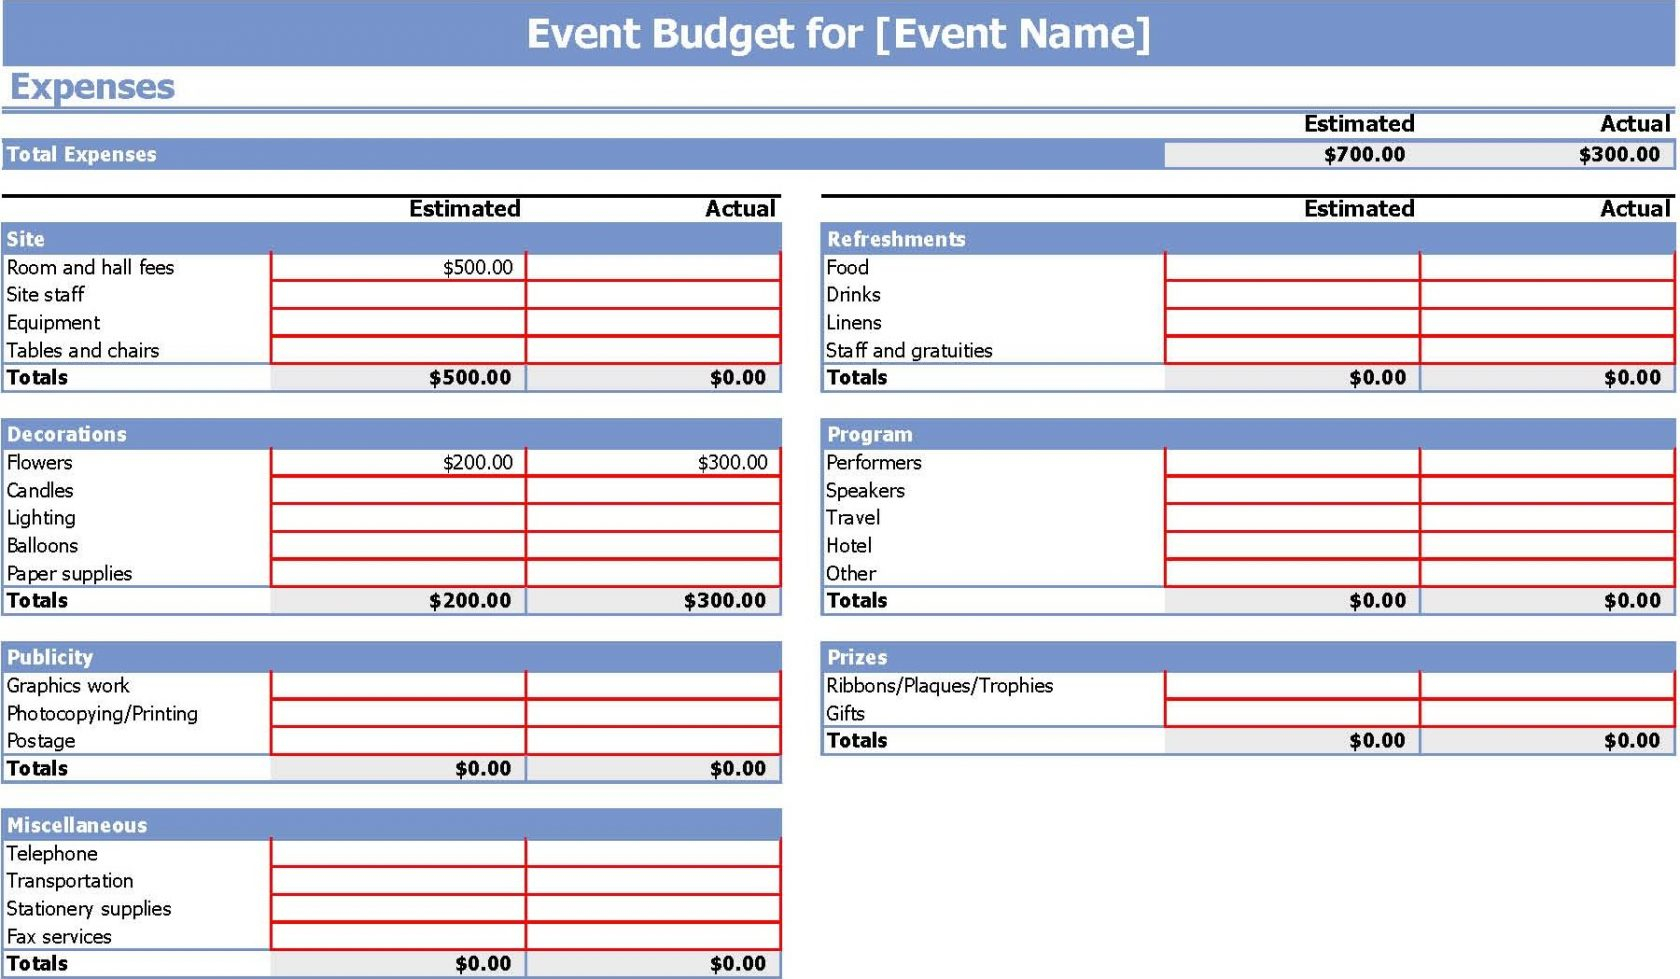 Candle Making Cost Spreadsheet With Spreadsheet Monthly Budget Excel Template Free Worksheet Templates Candle Making Cost Spreadsheet Google Spreadshee Google Spreadshee candle making cost spreadsheet